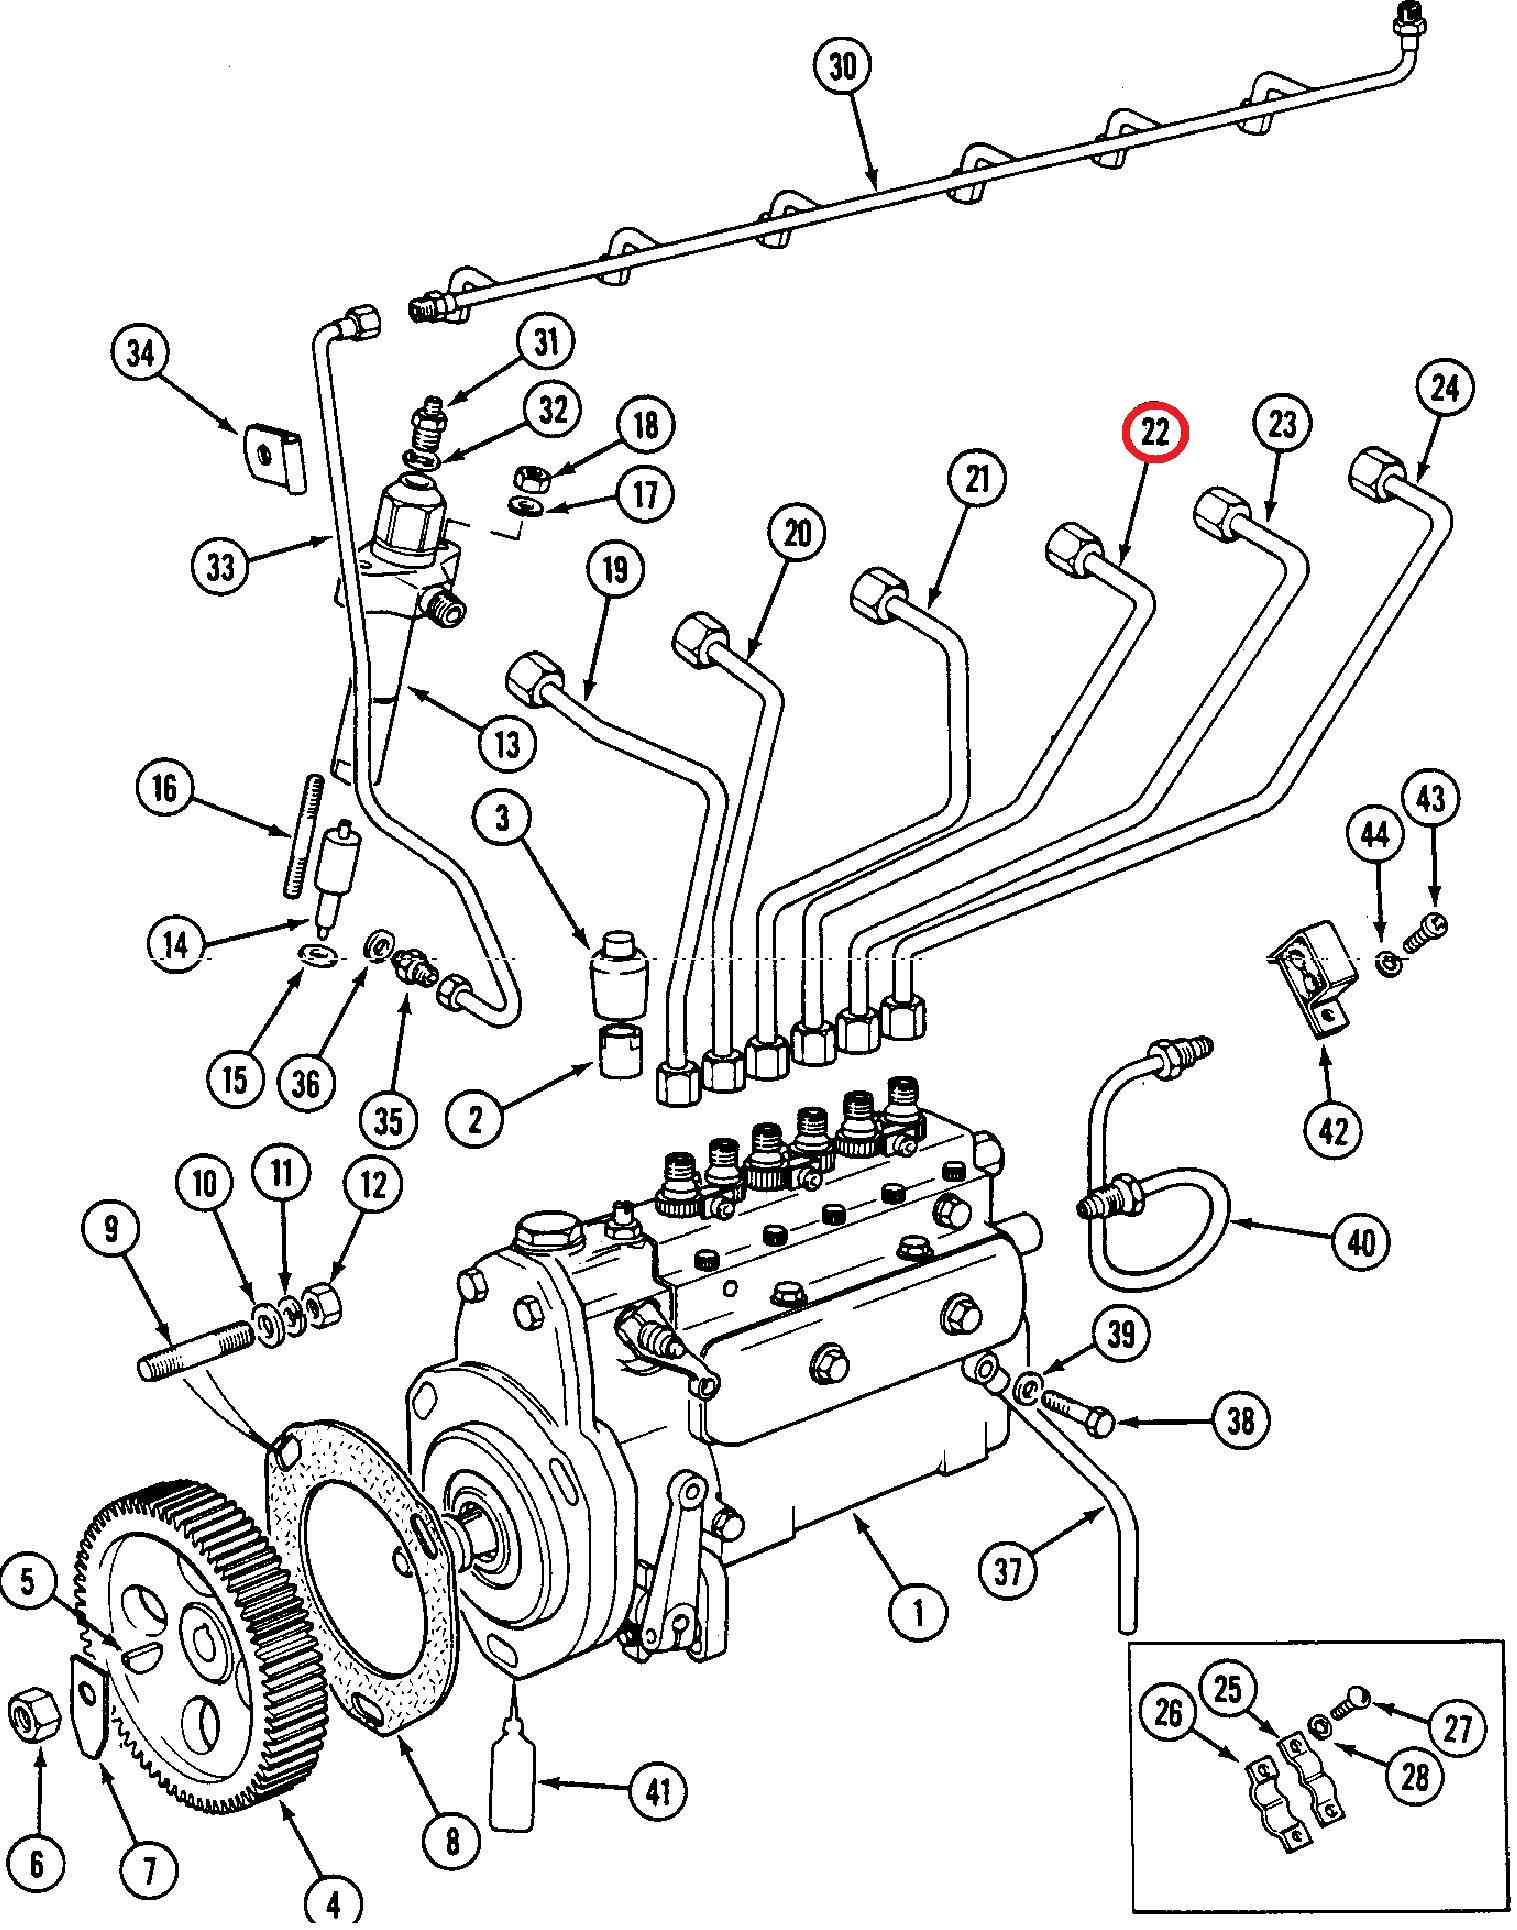 new part - parts david brown - engine - oil system